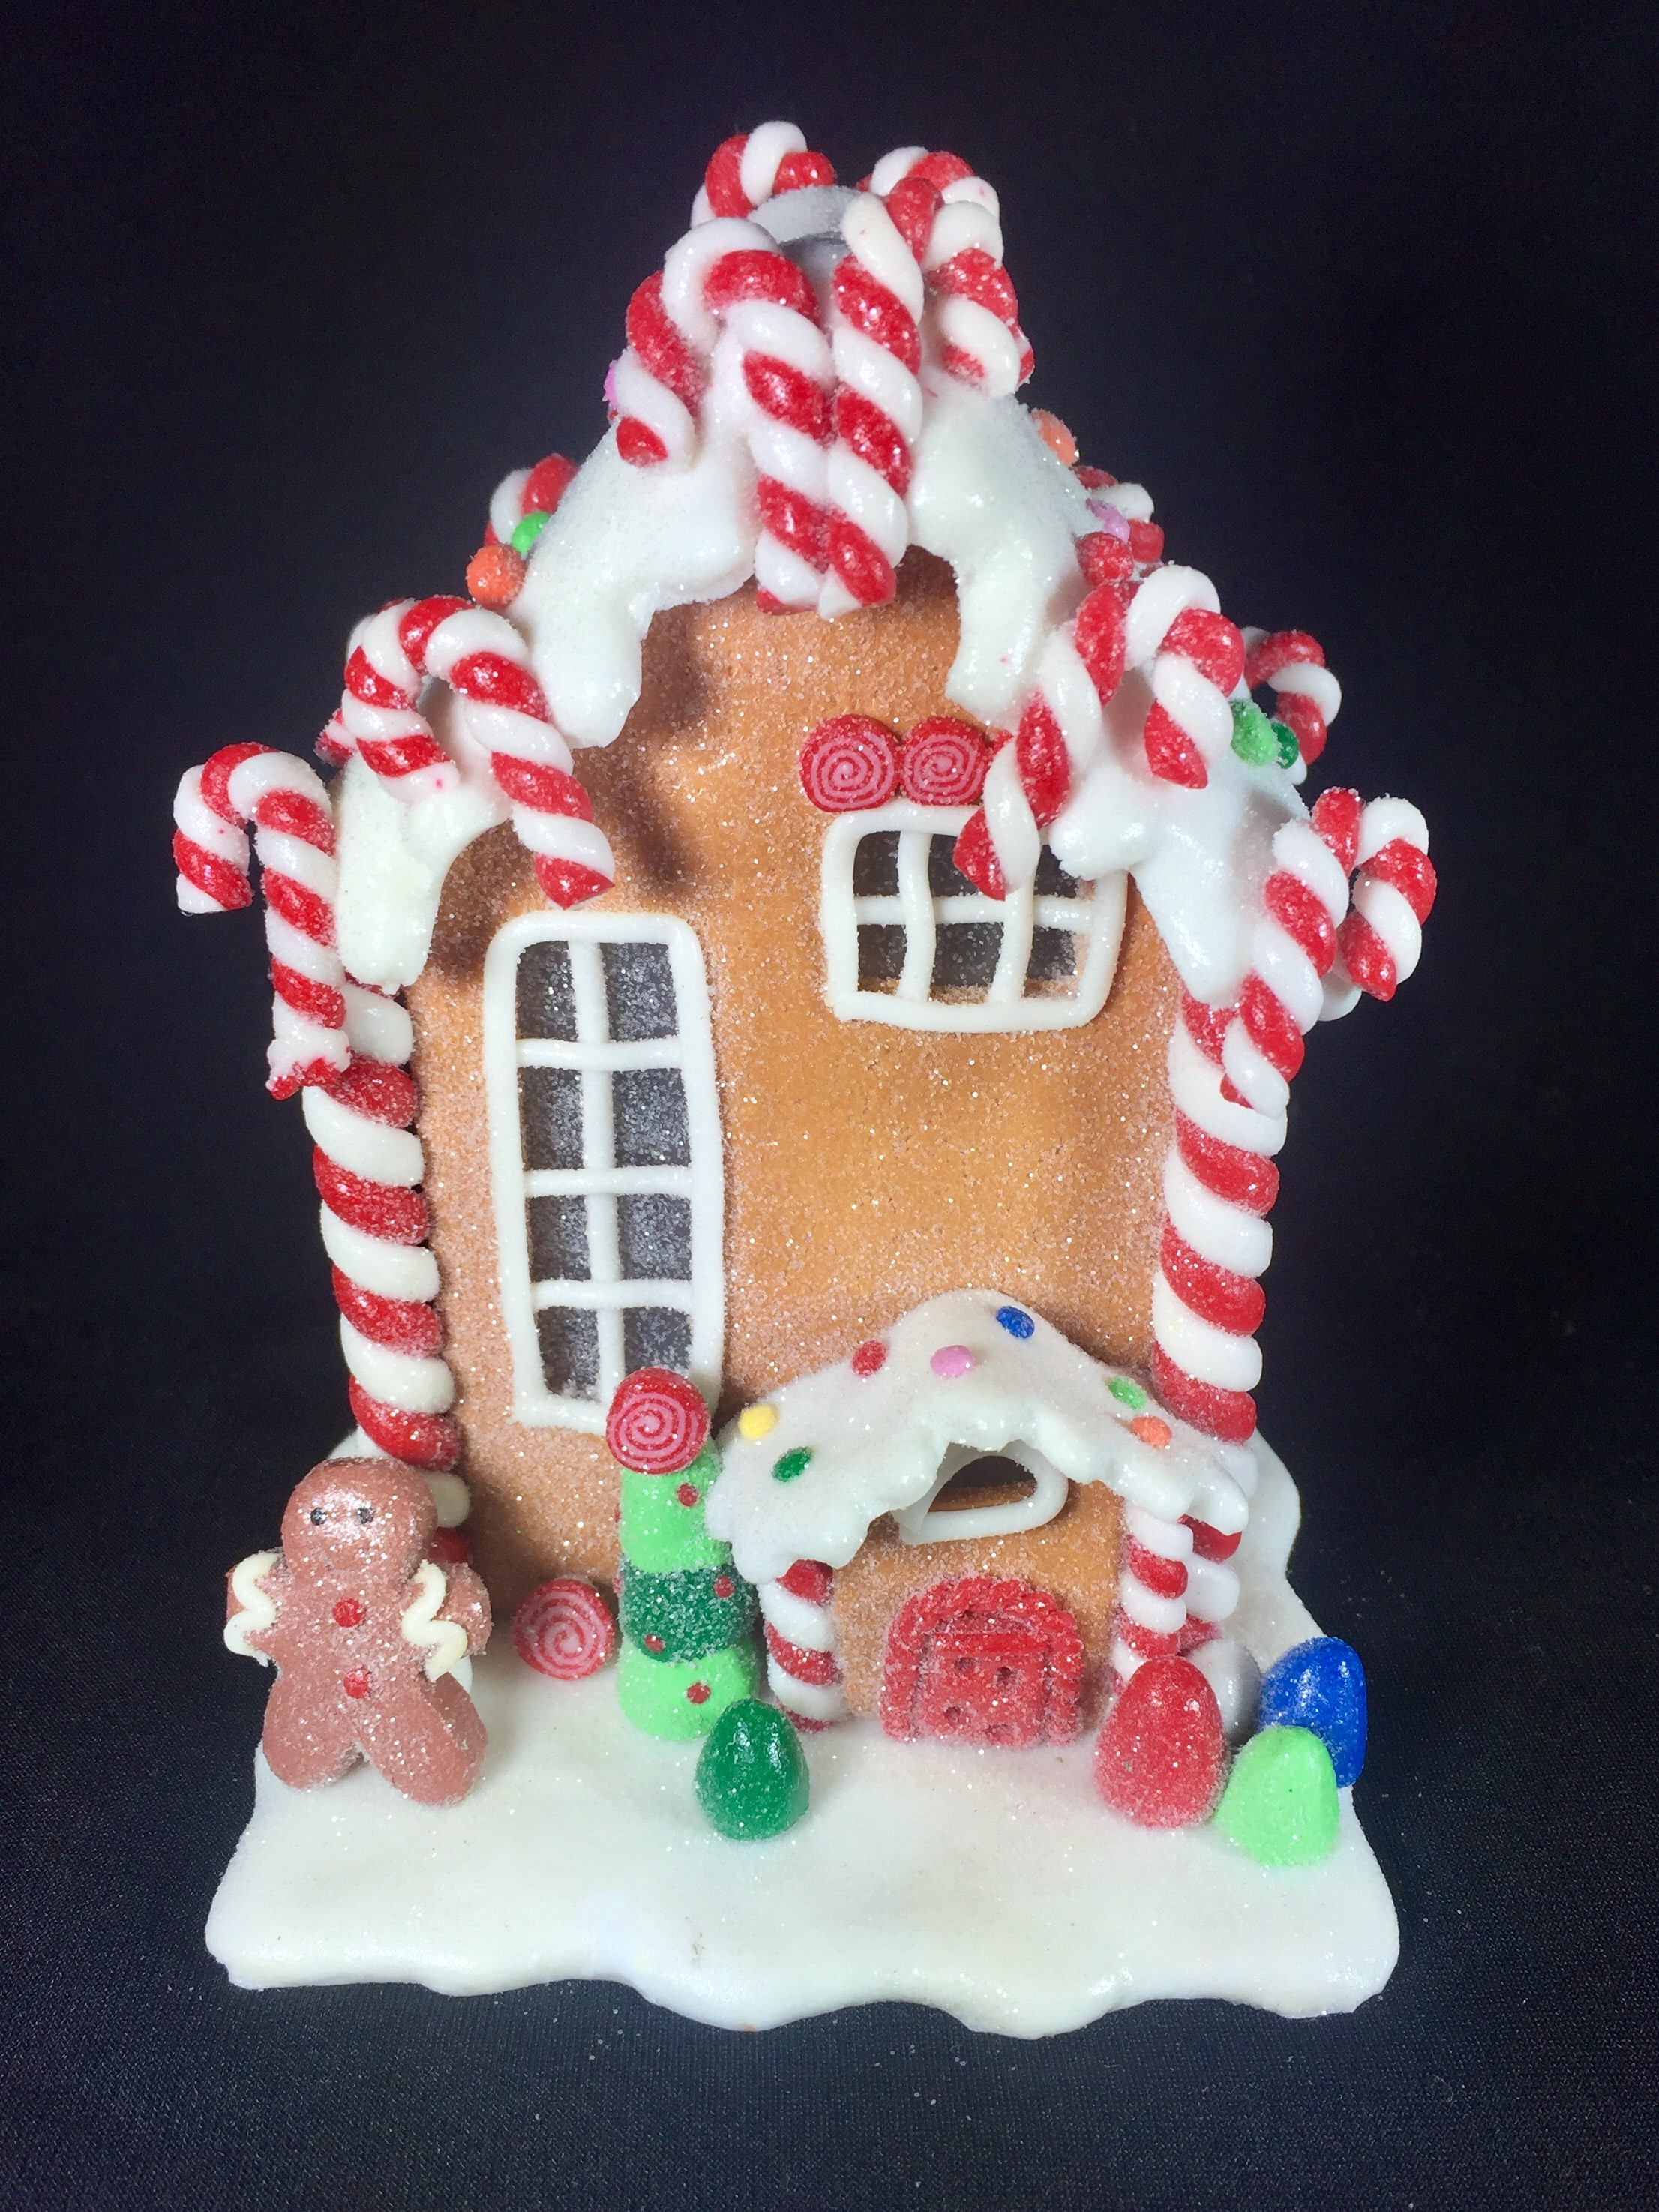 Christmas Gingerbread House.Gingerbread House With Candy Canes